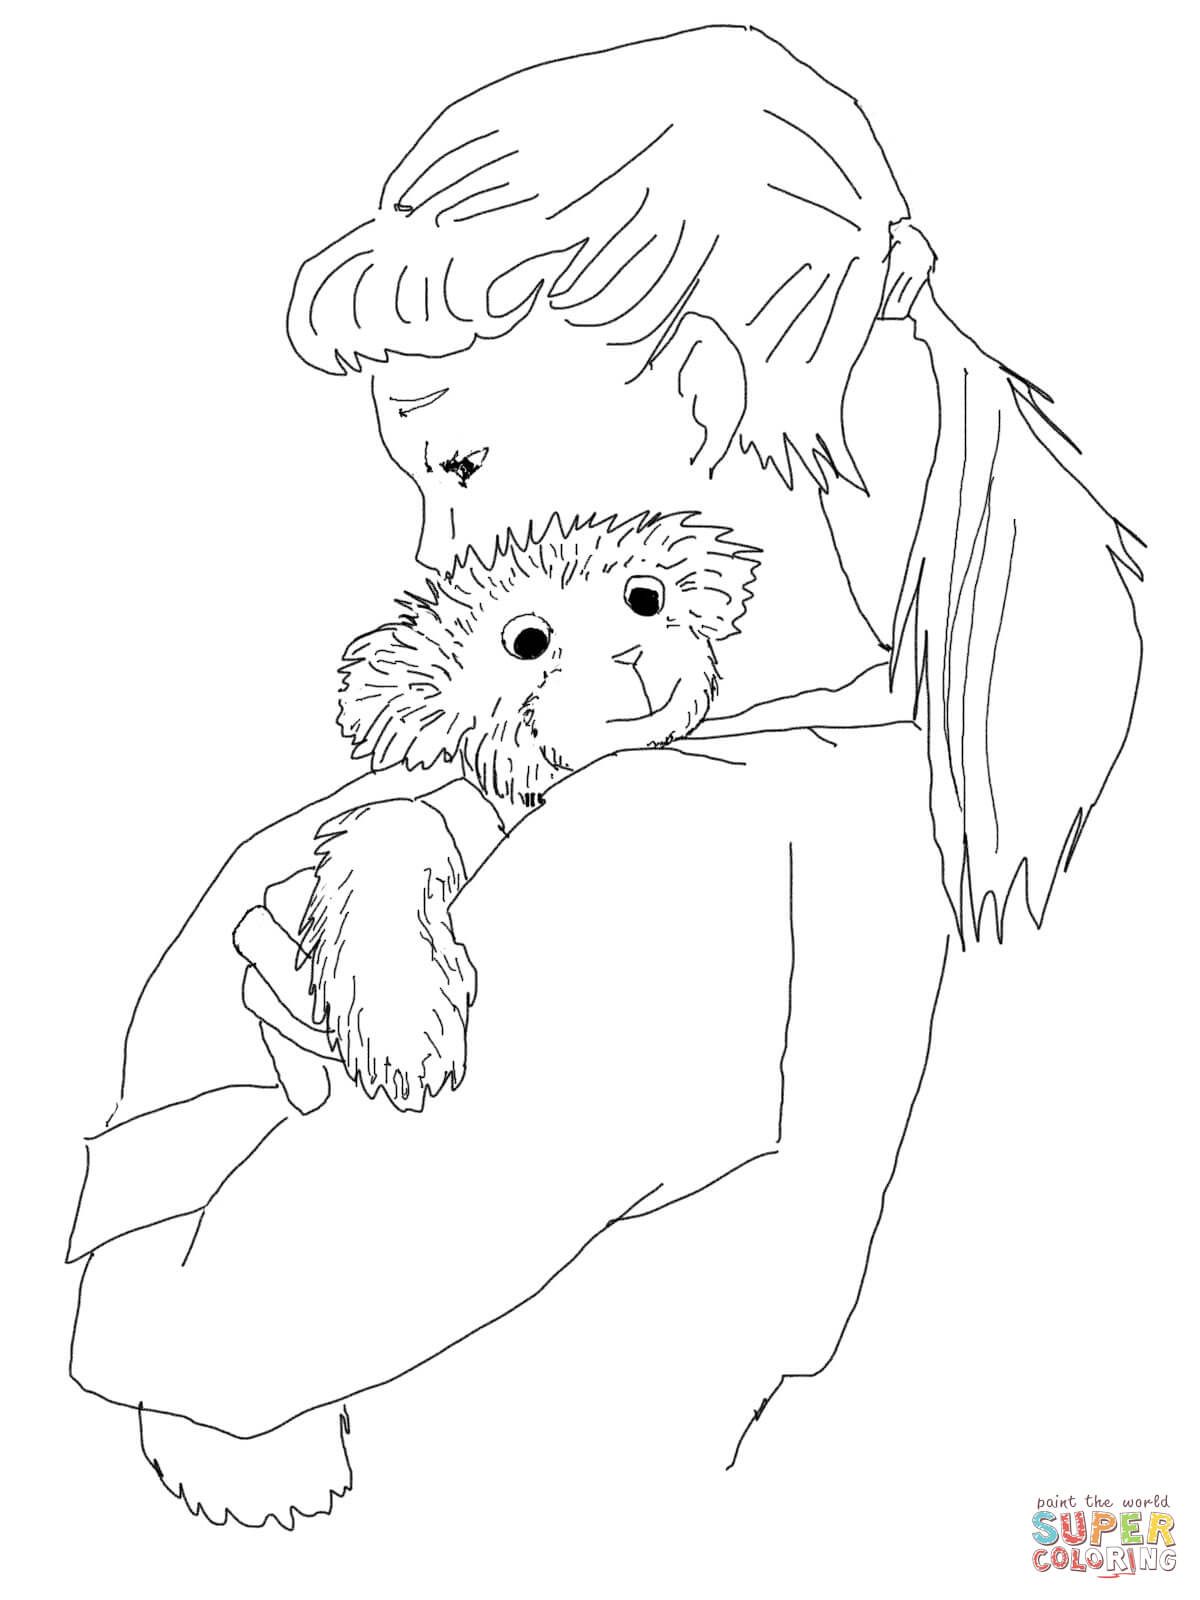 corduroy bear coloring page corduroy is looking for button coloring page free coloring corduroy page bear